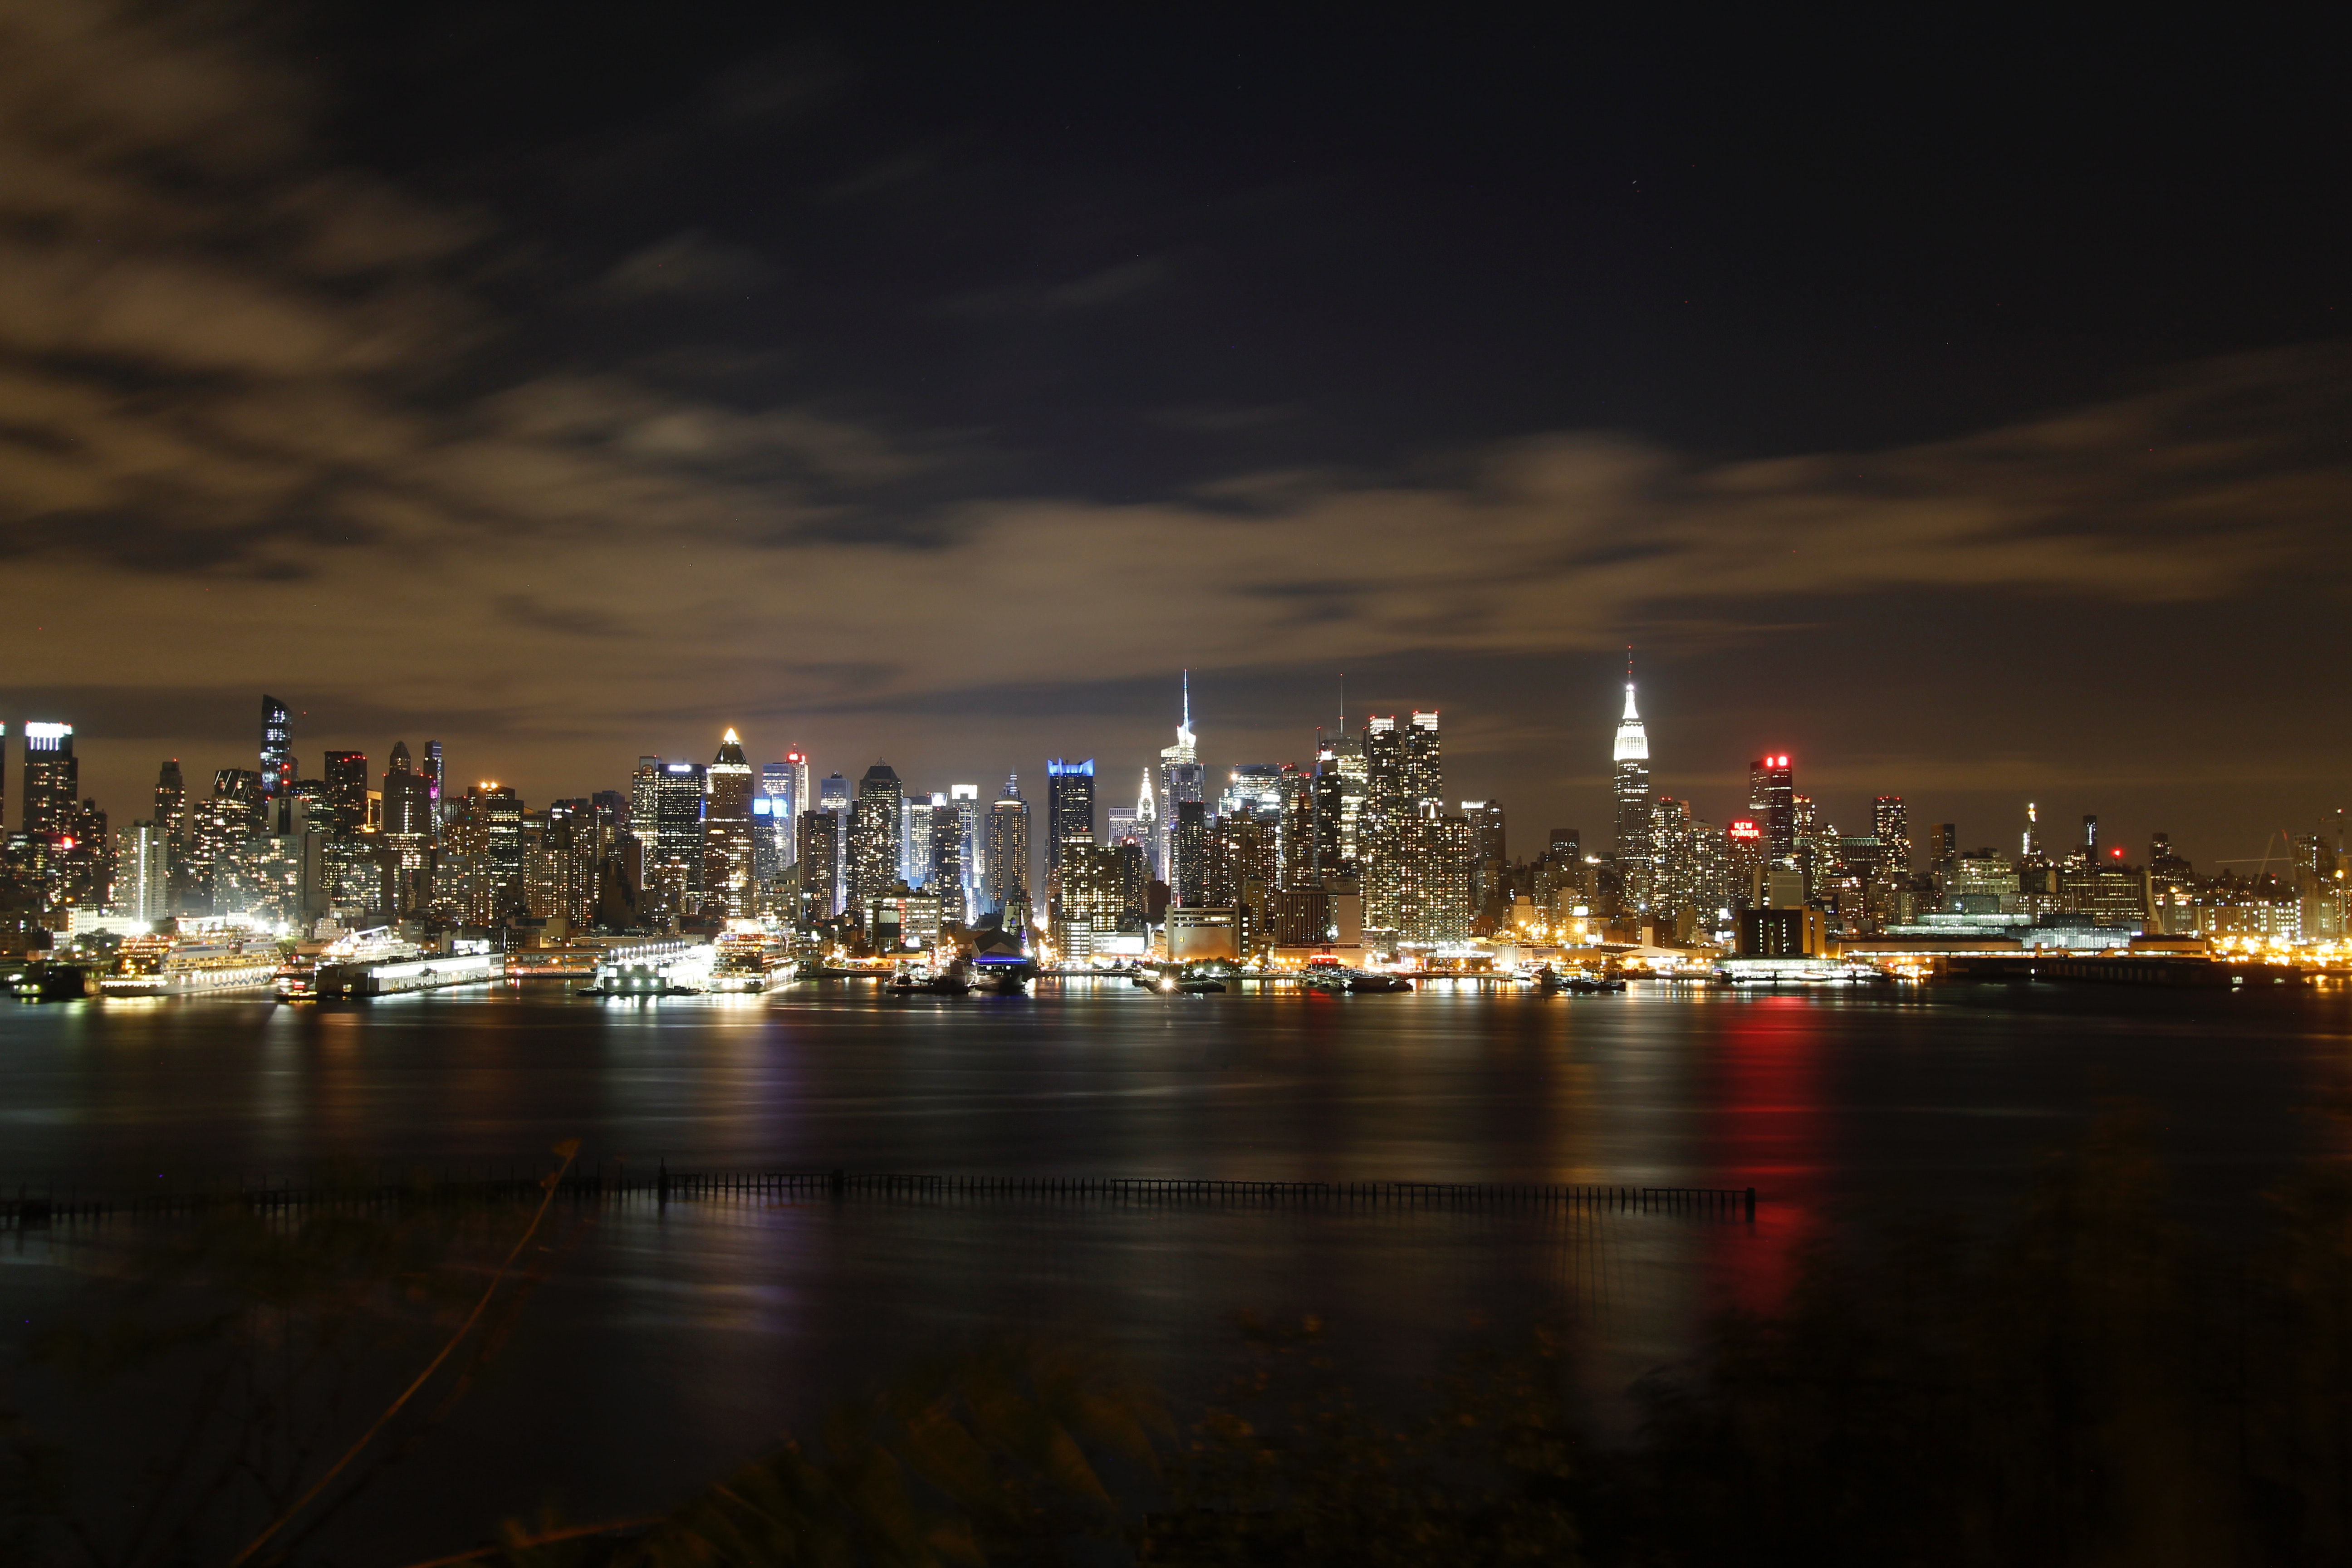 High Rise Buildings during Nighttime, Architecture, Panoramic, Water, View, HQ Photo